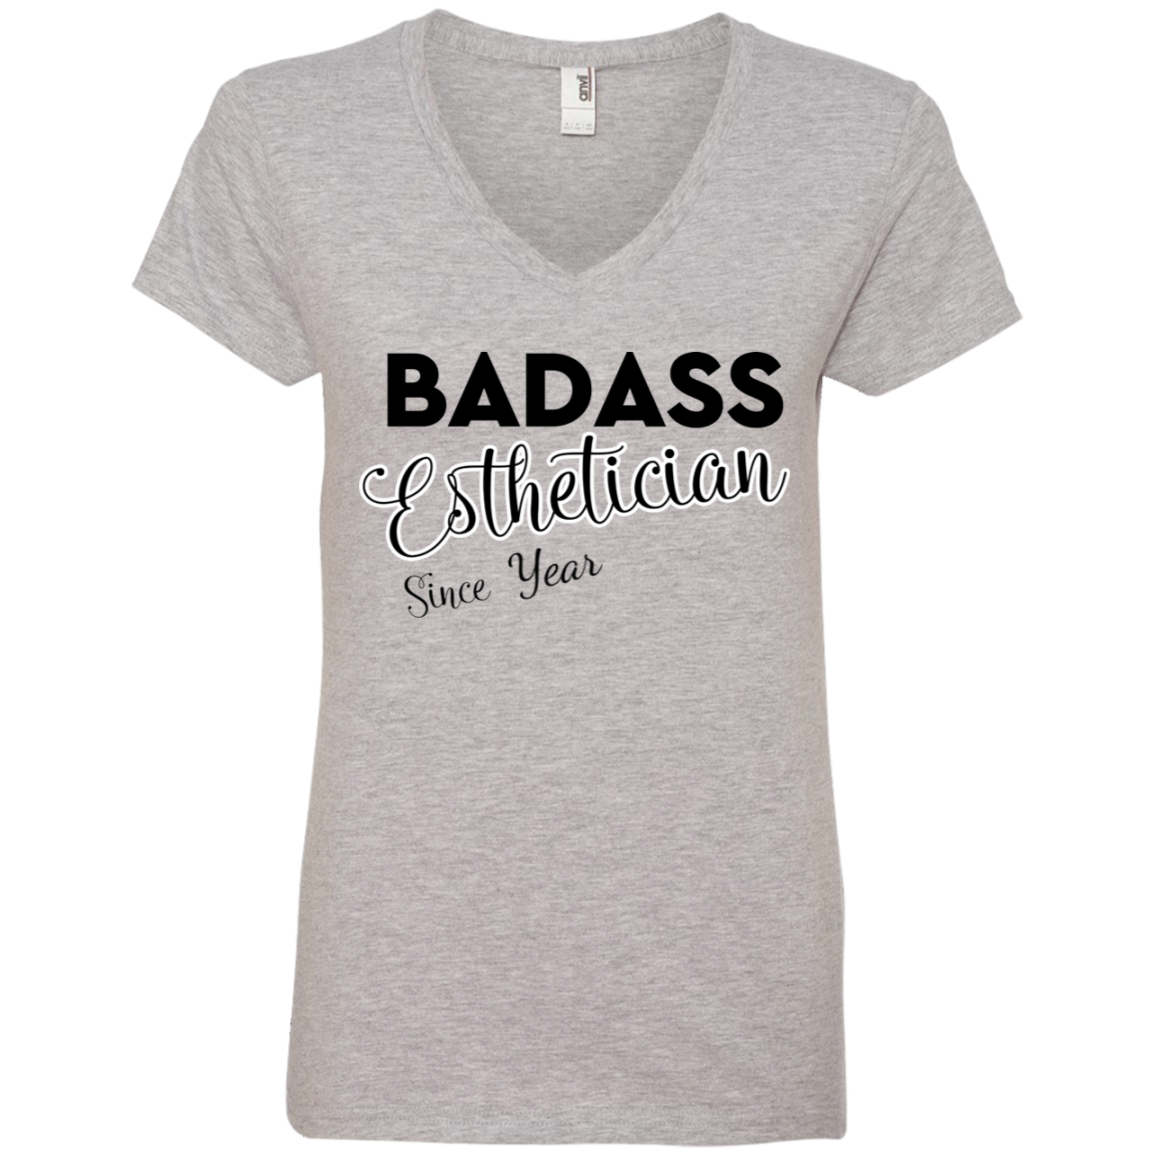 Customized Bada$$ Esthetician Shirt